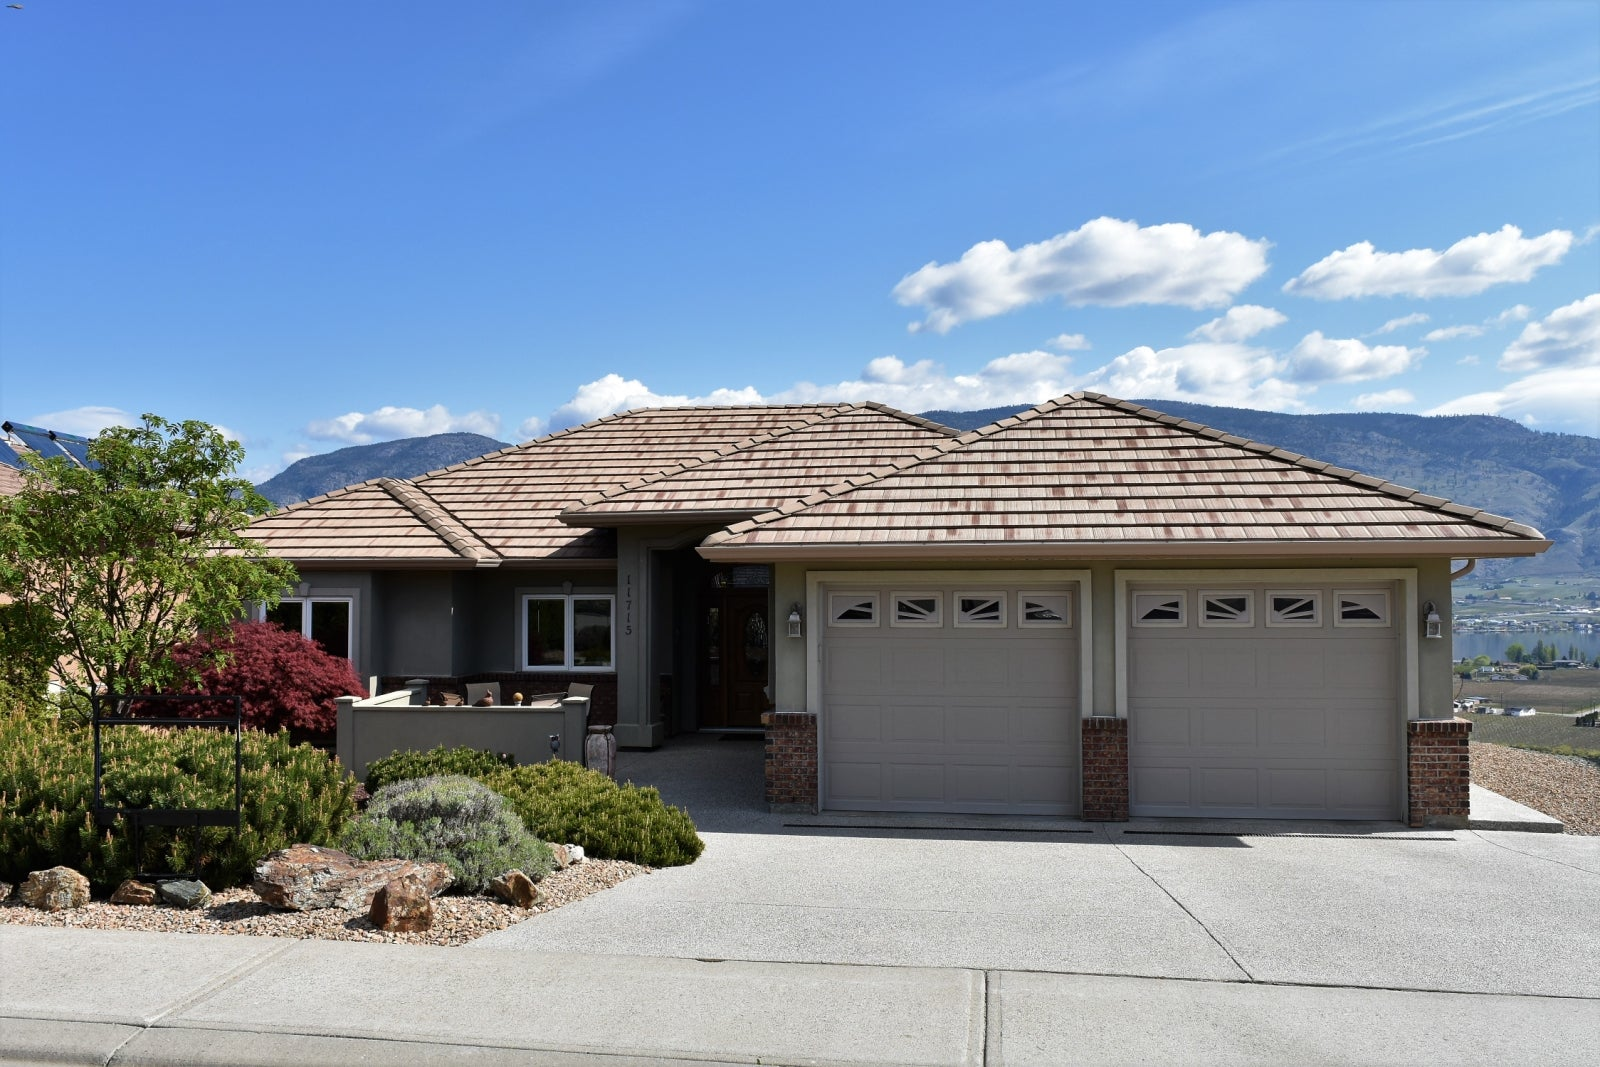 11715 Olympic View Drive - Osoyoos Single Family for sale, 4 Bedrooms (176846) #5